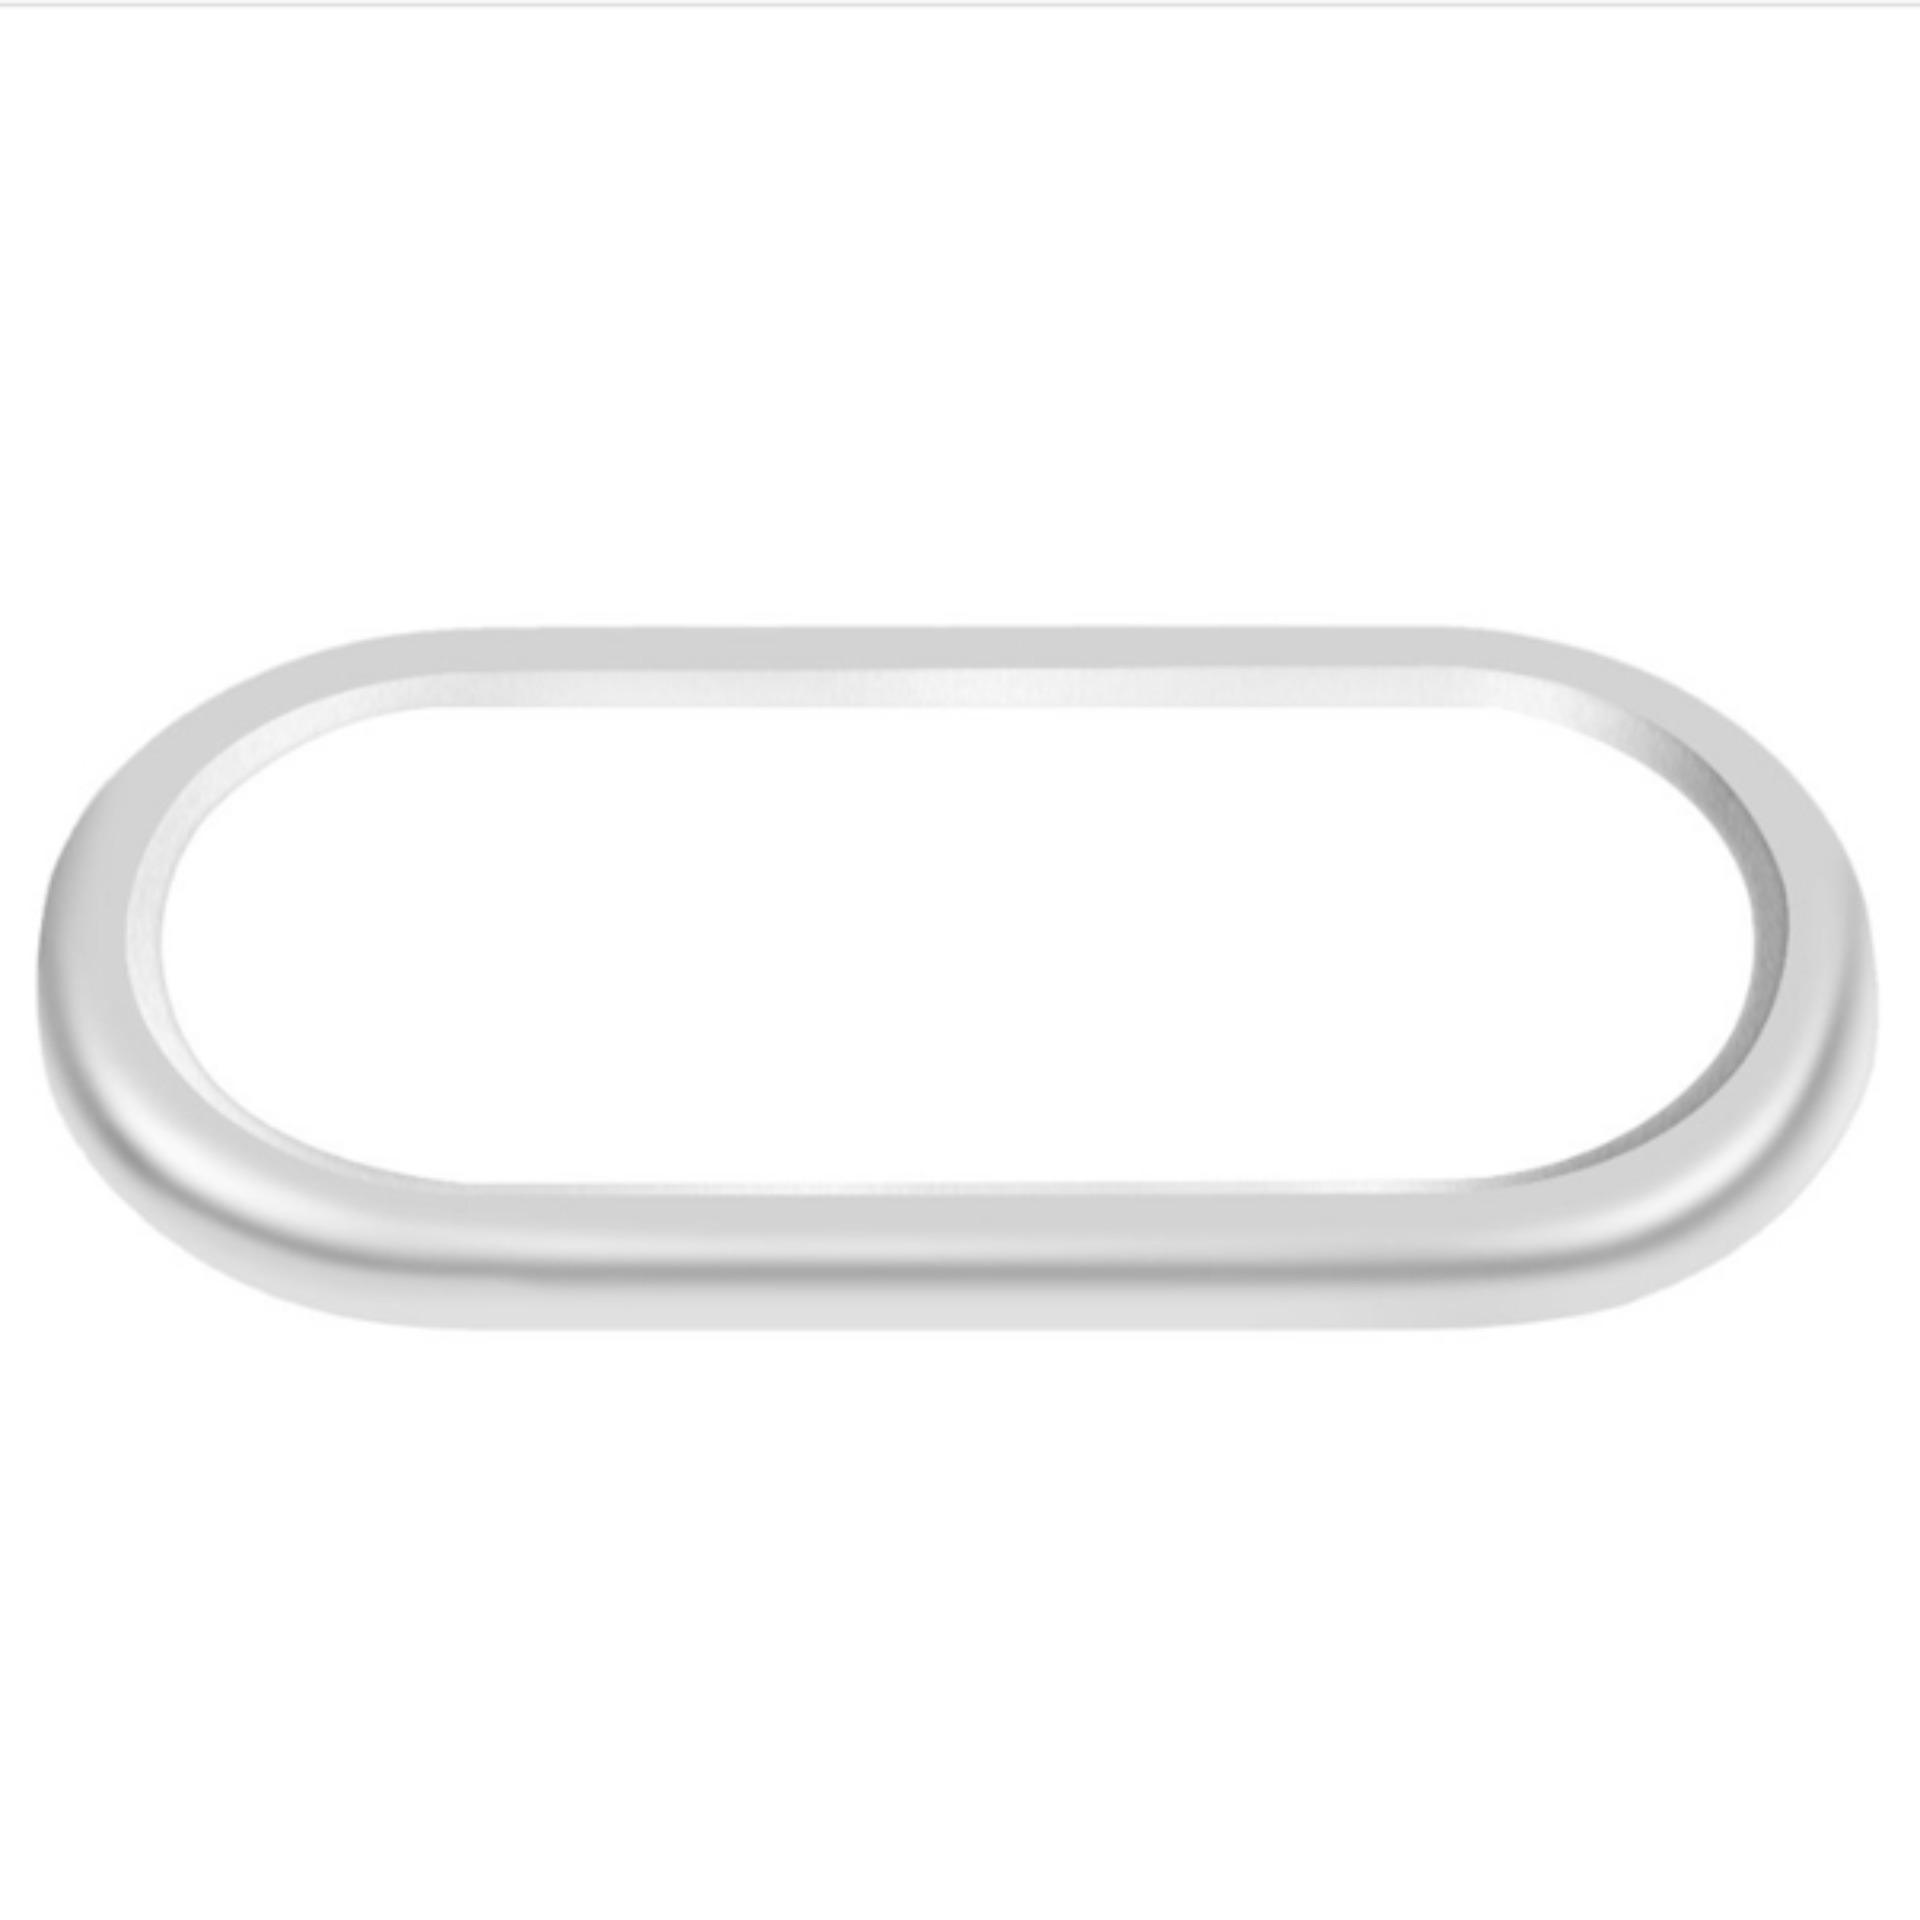 Buy Sell Cheapest Silver Iphone X Best Quality Product Deals Goospery New Bumper Case Aluminum Rear Back Camera Lens Protector For Apple